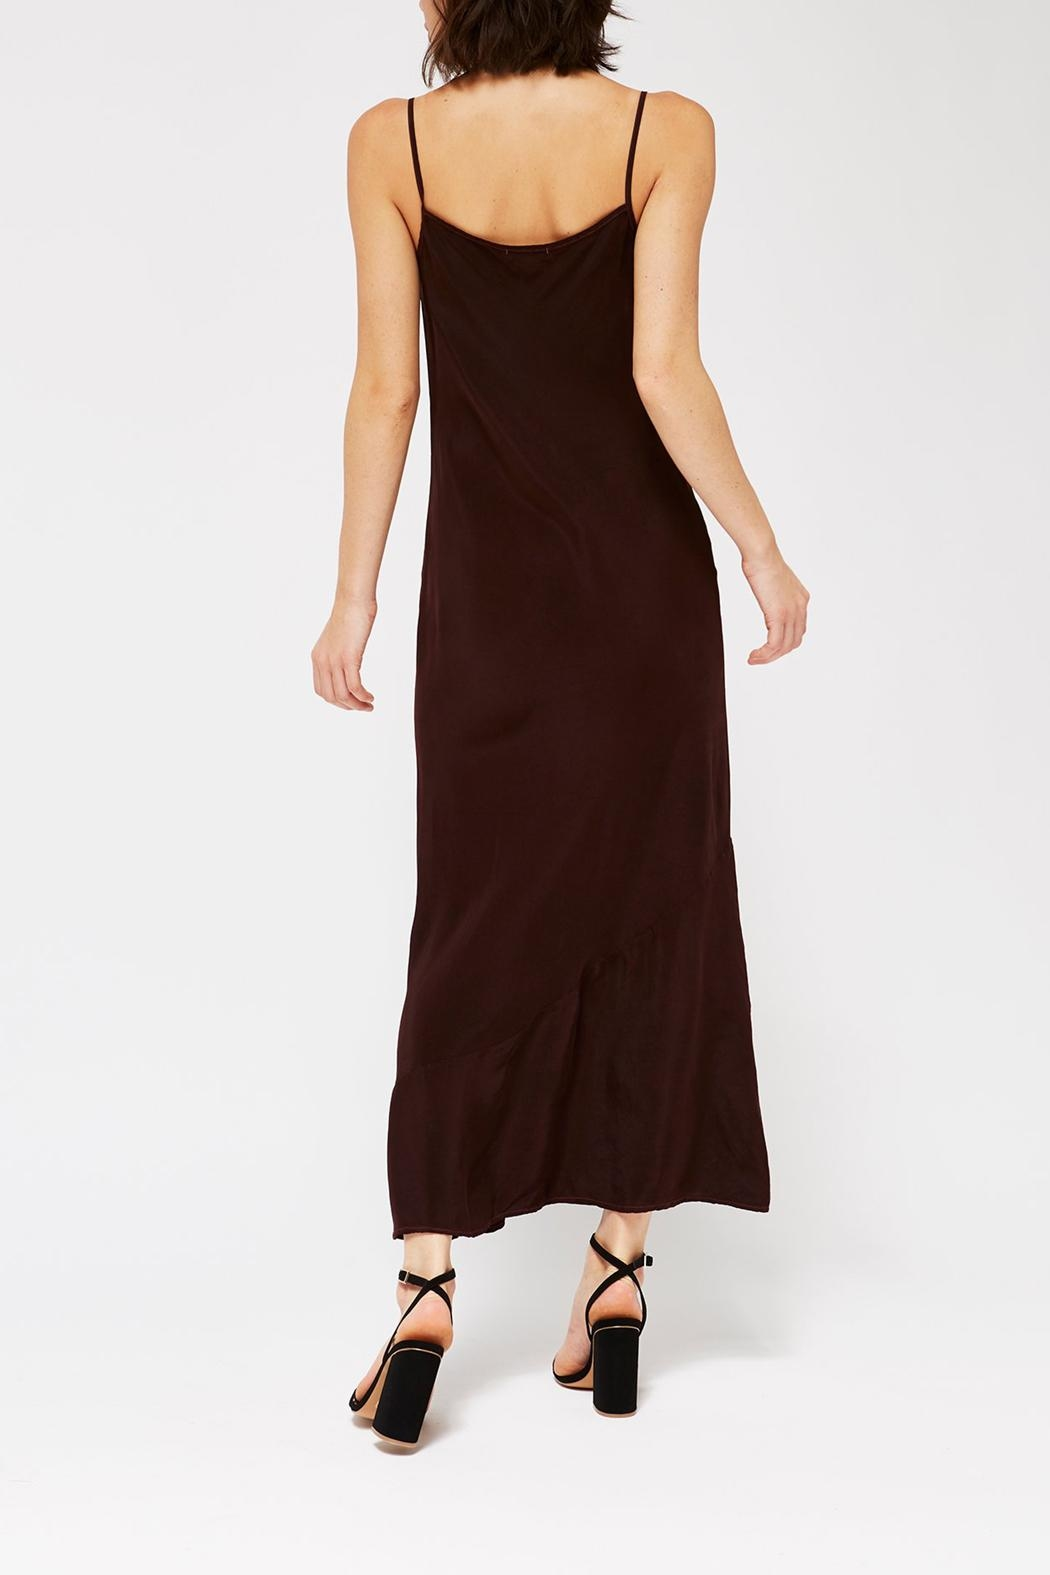 LACAUSA Bias Slip Dress - Side Cropped Image